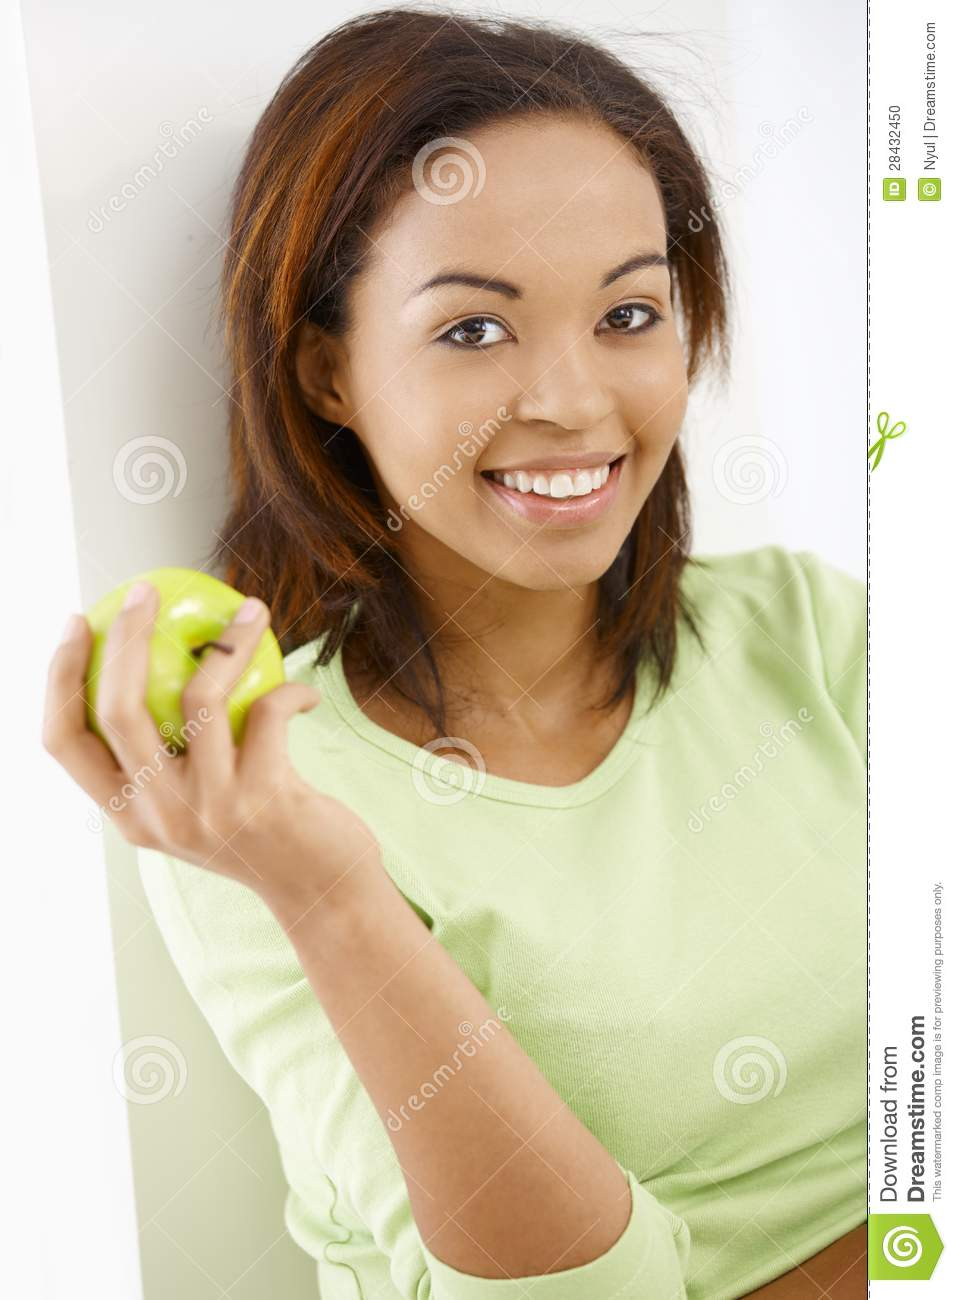 Happy girl with apple